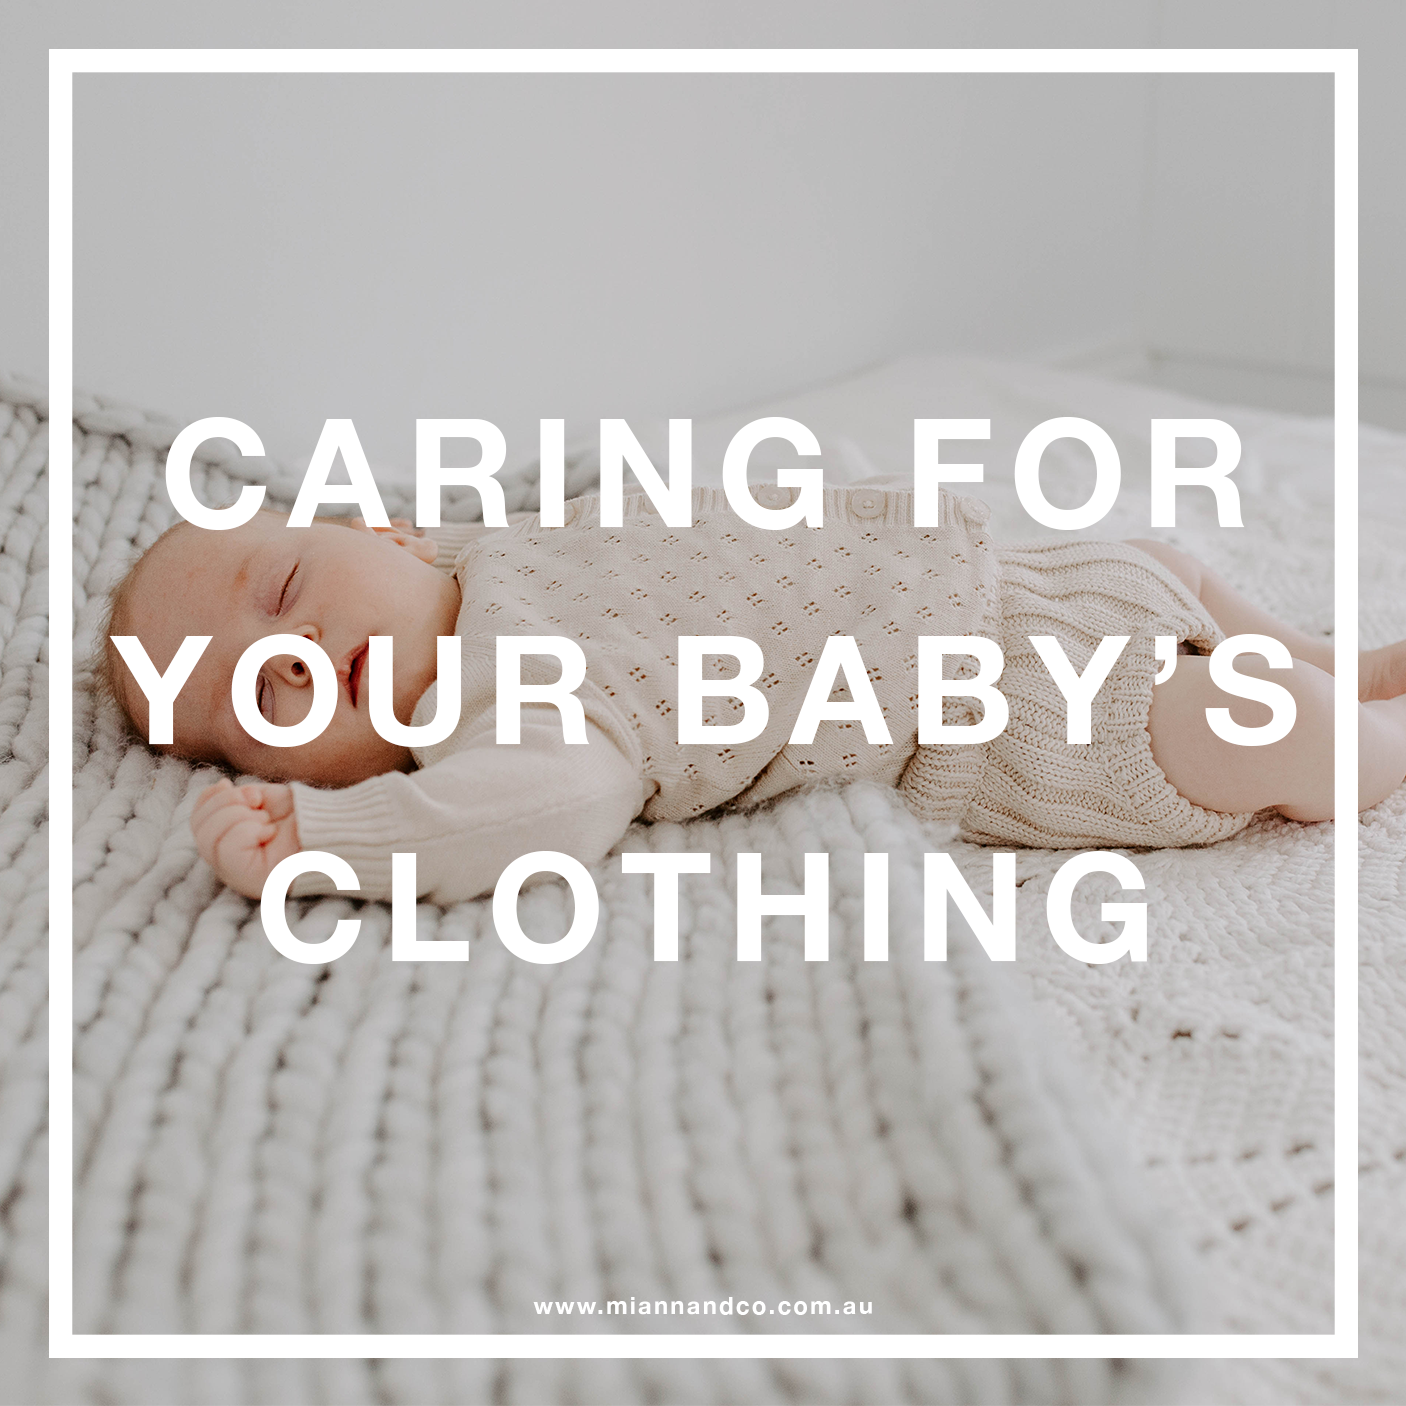 CARING FOR YOUR BABY'S CLOTHING